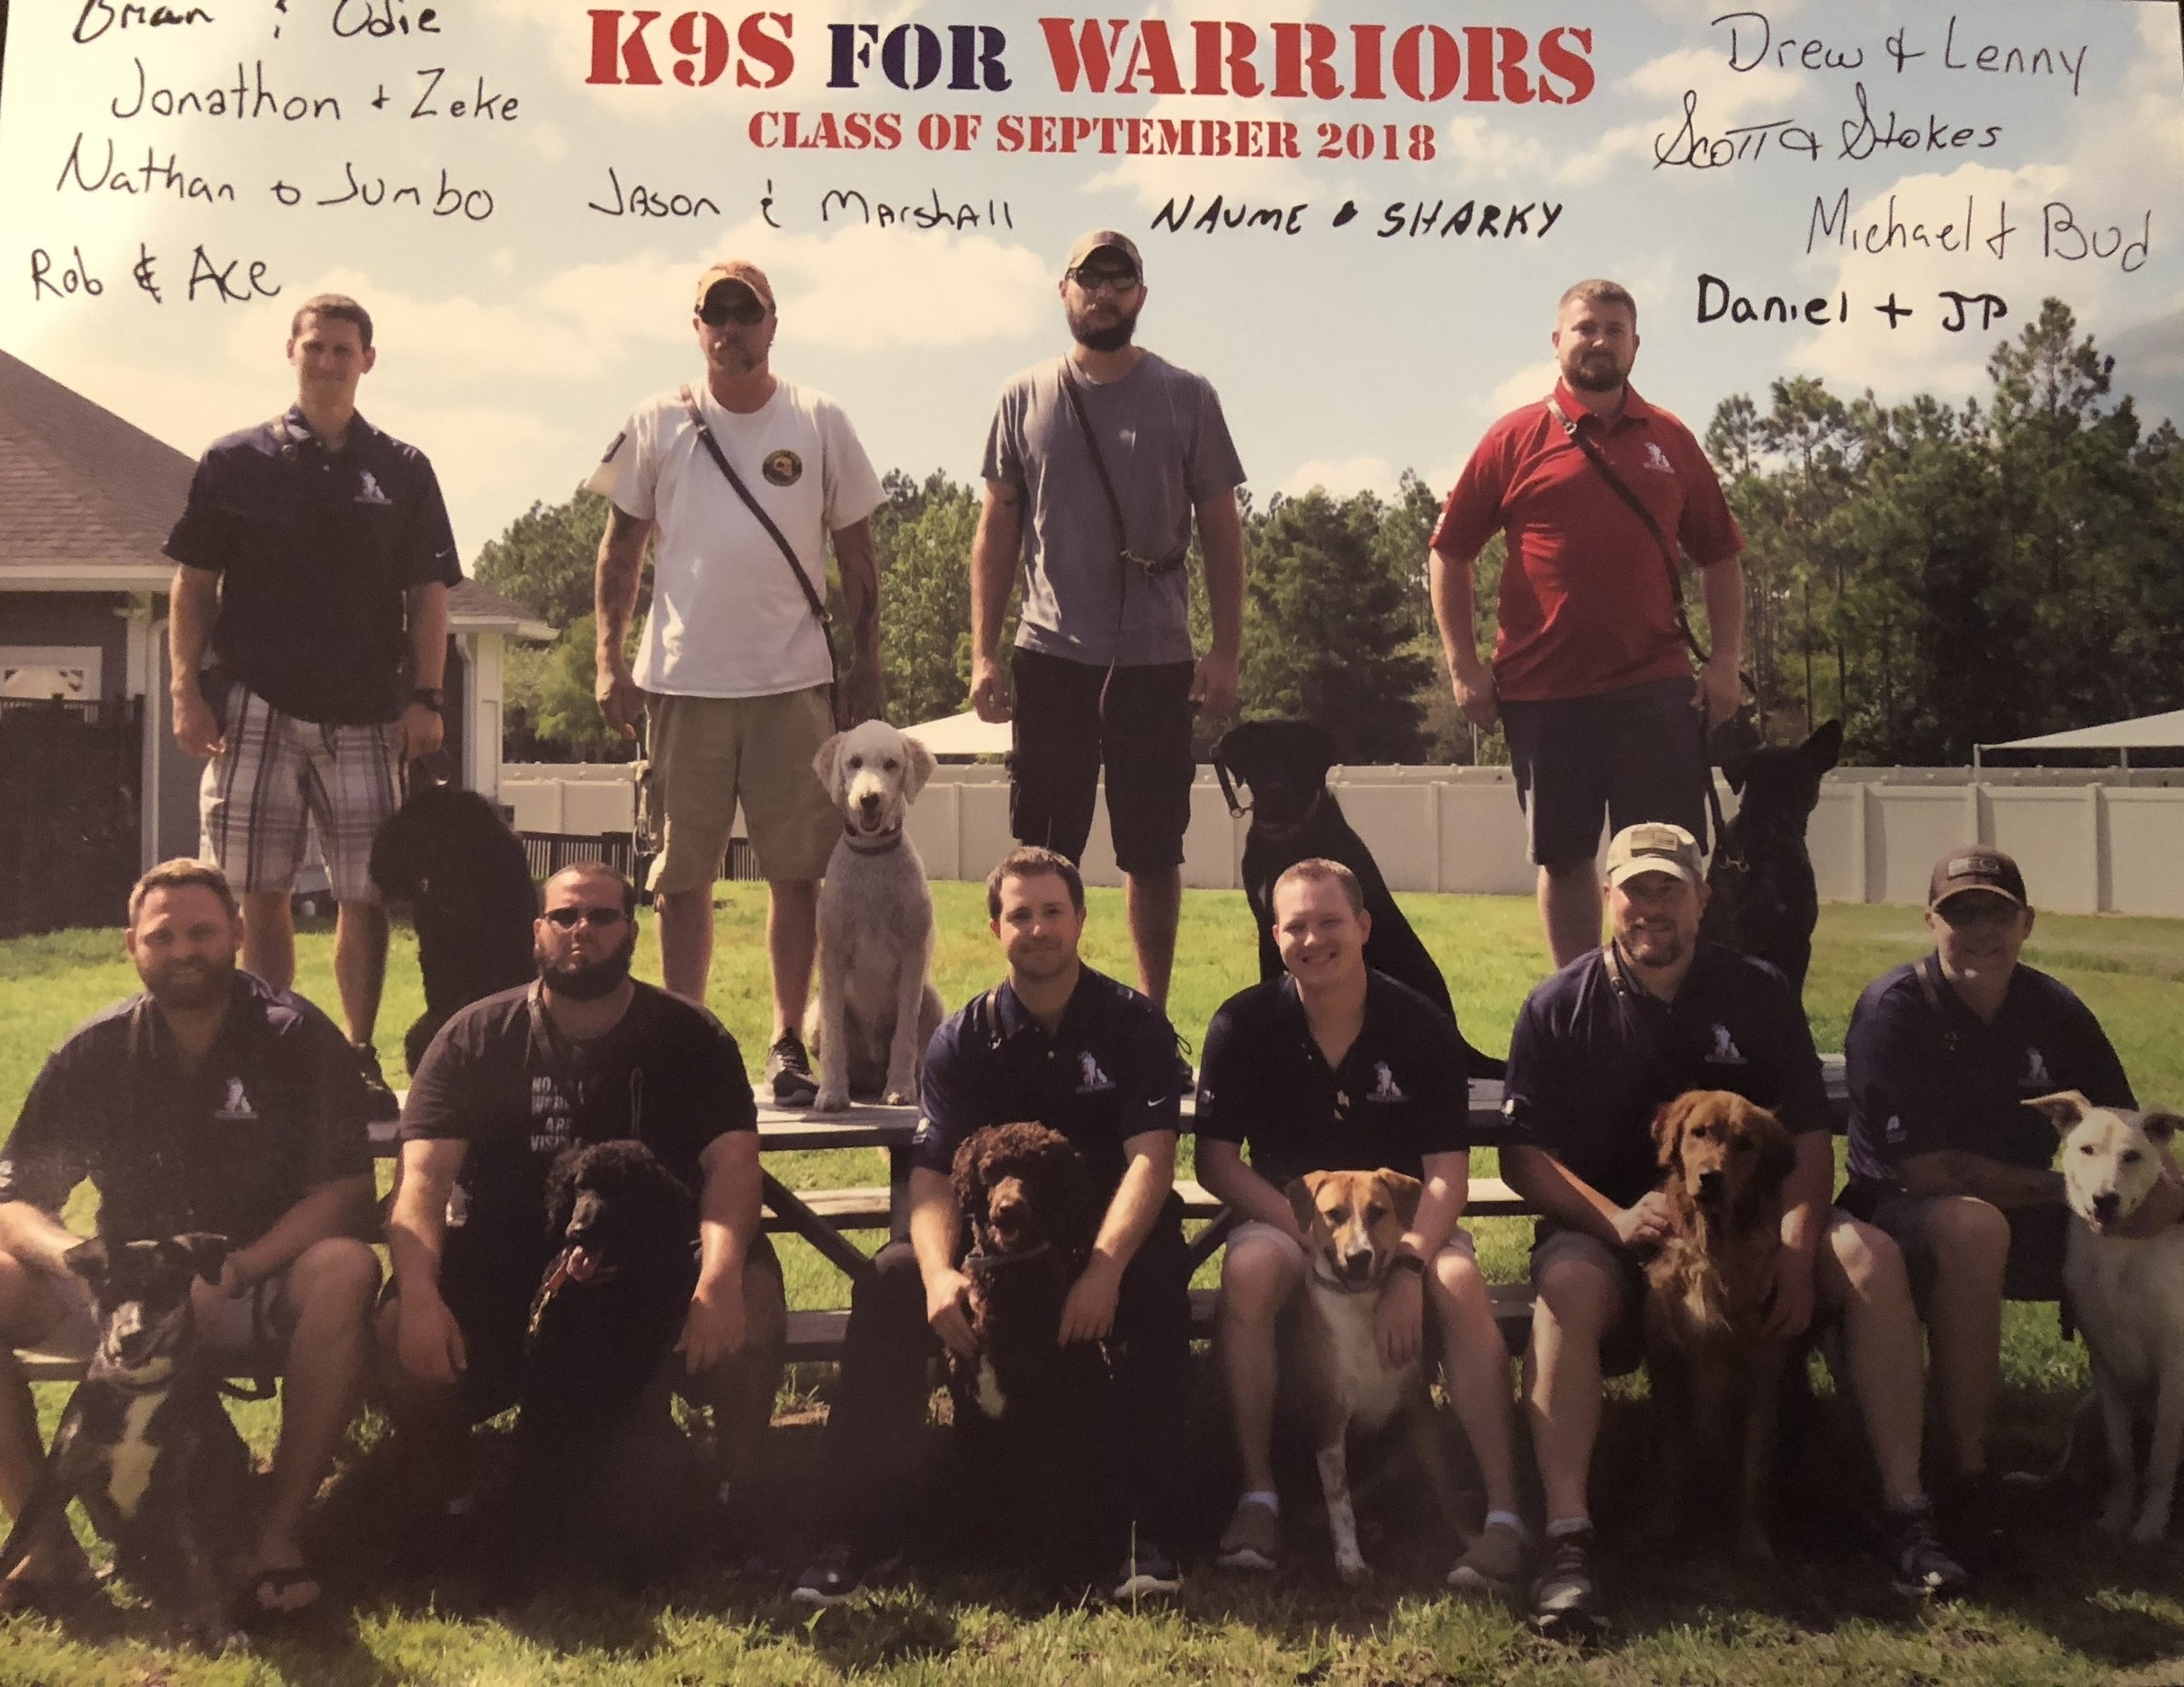 Great to see the foundation's impact from our first annual Puppy Pedal and the 2018 Chicago Marathon fundraising for K9 for Warriors